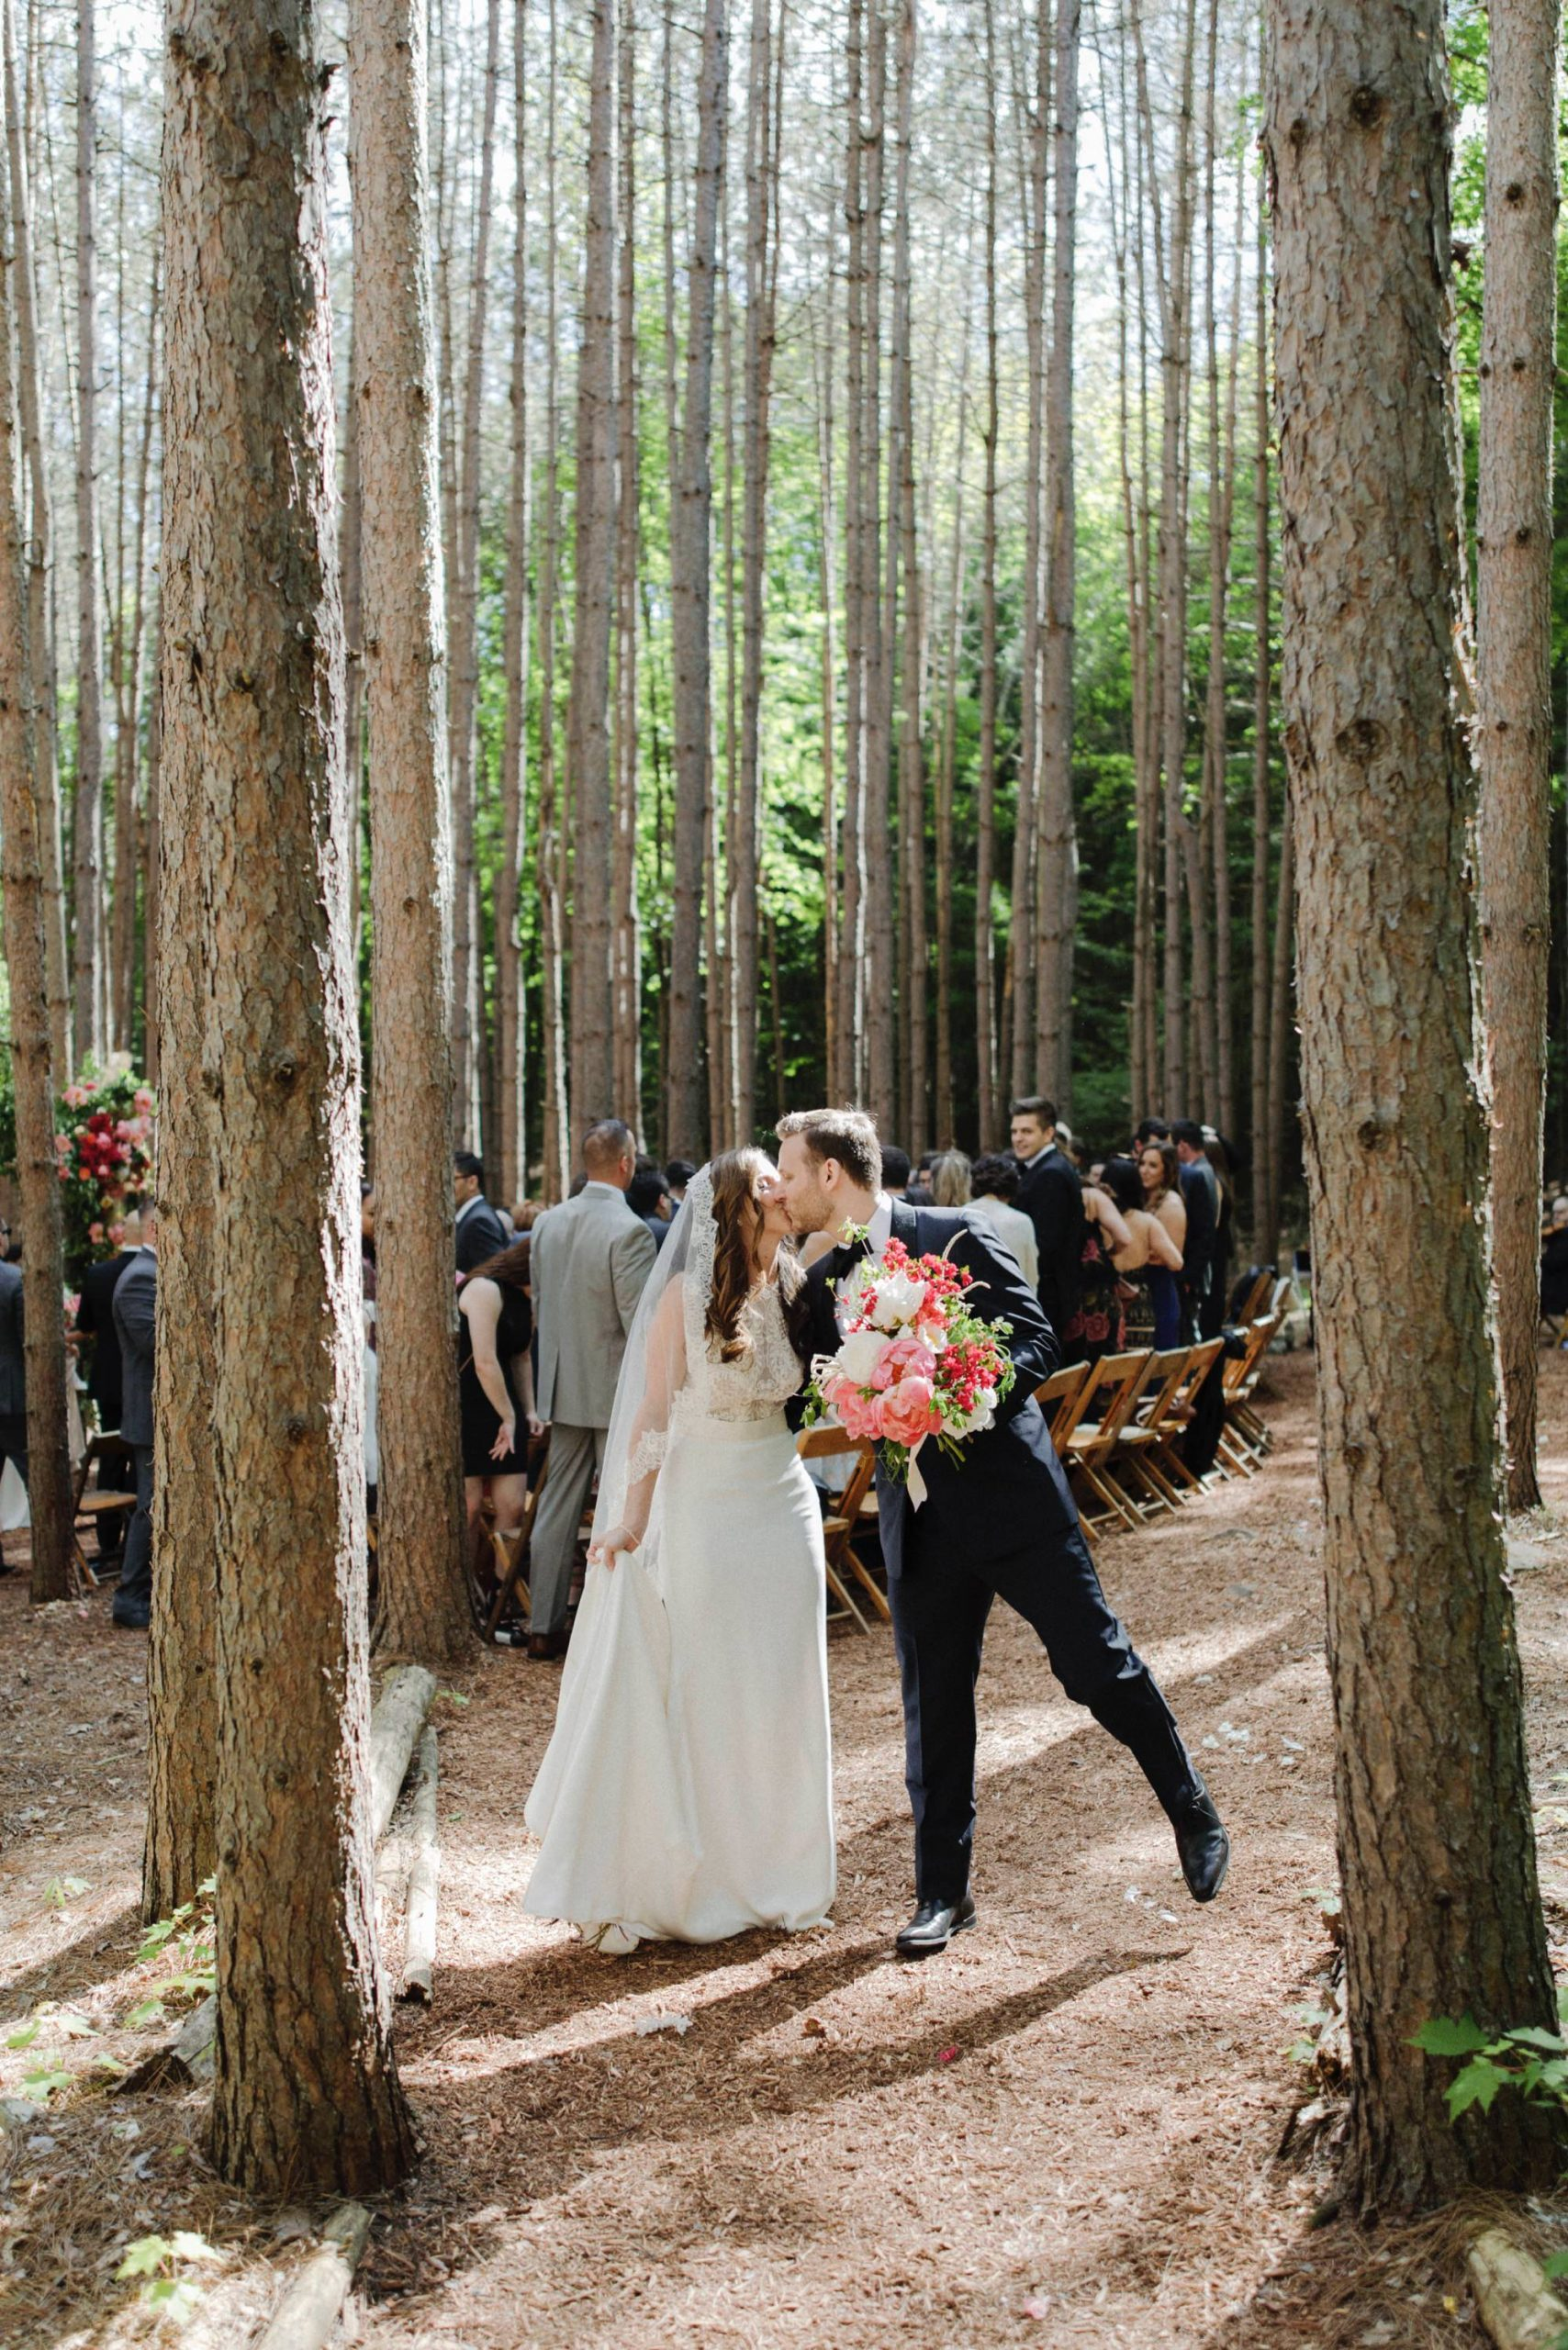 bride and groom exchanging a kiss as walking back down the aisle at the Pine Grove location at Roxbury Barn Estate in the Catskills New York